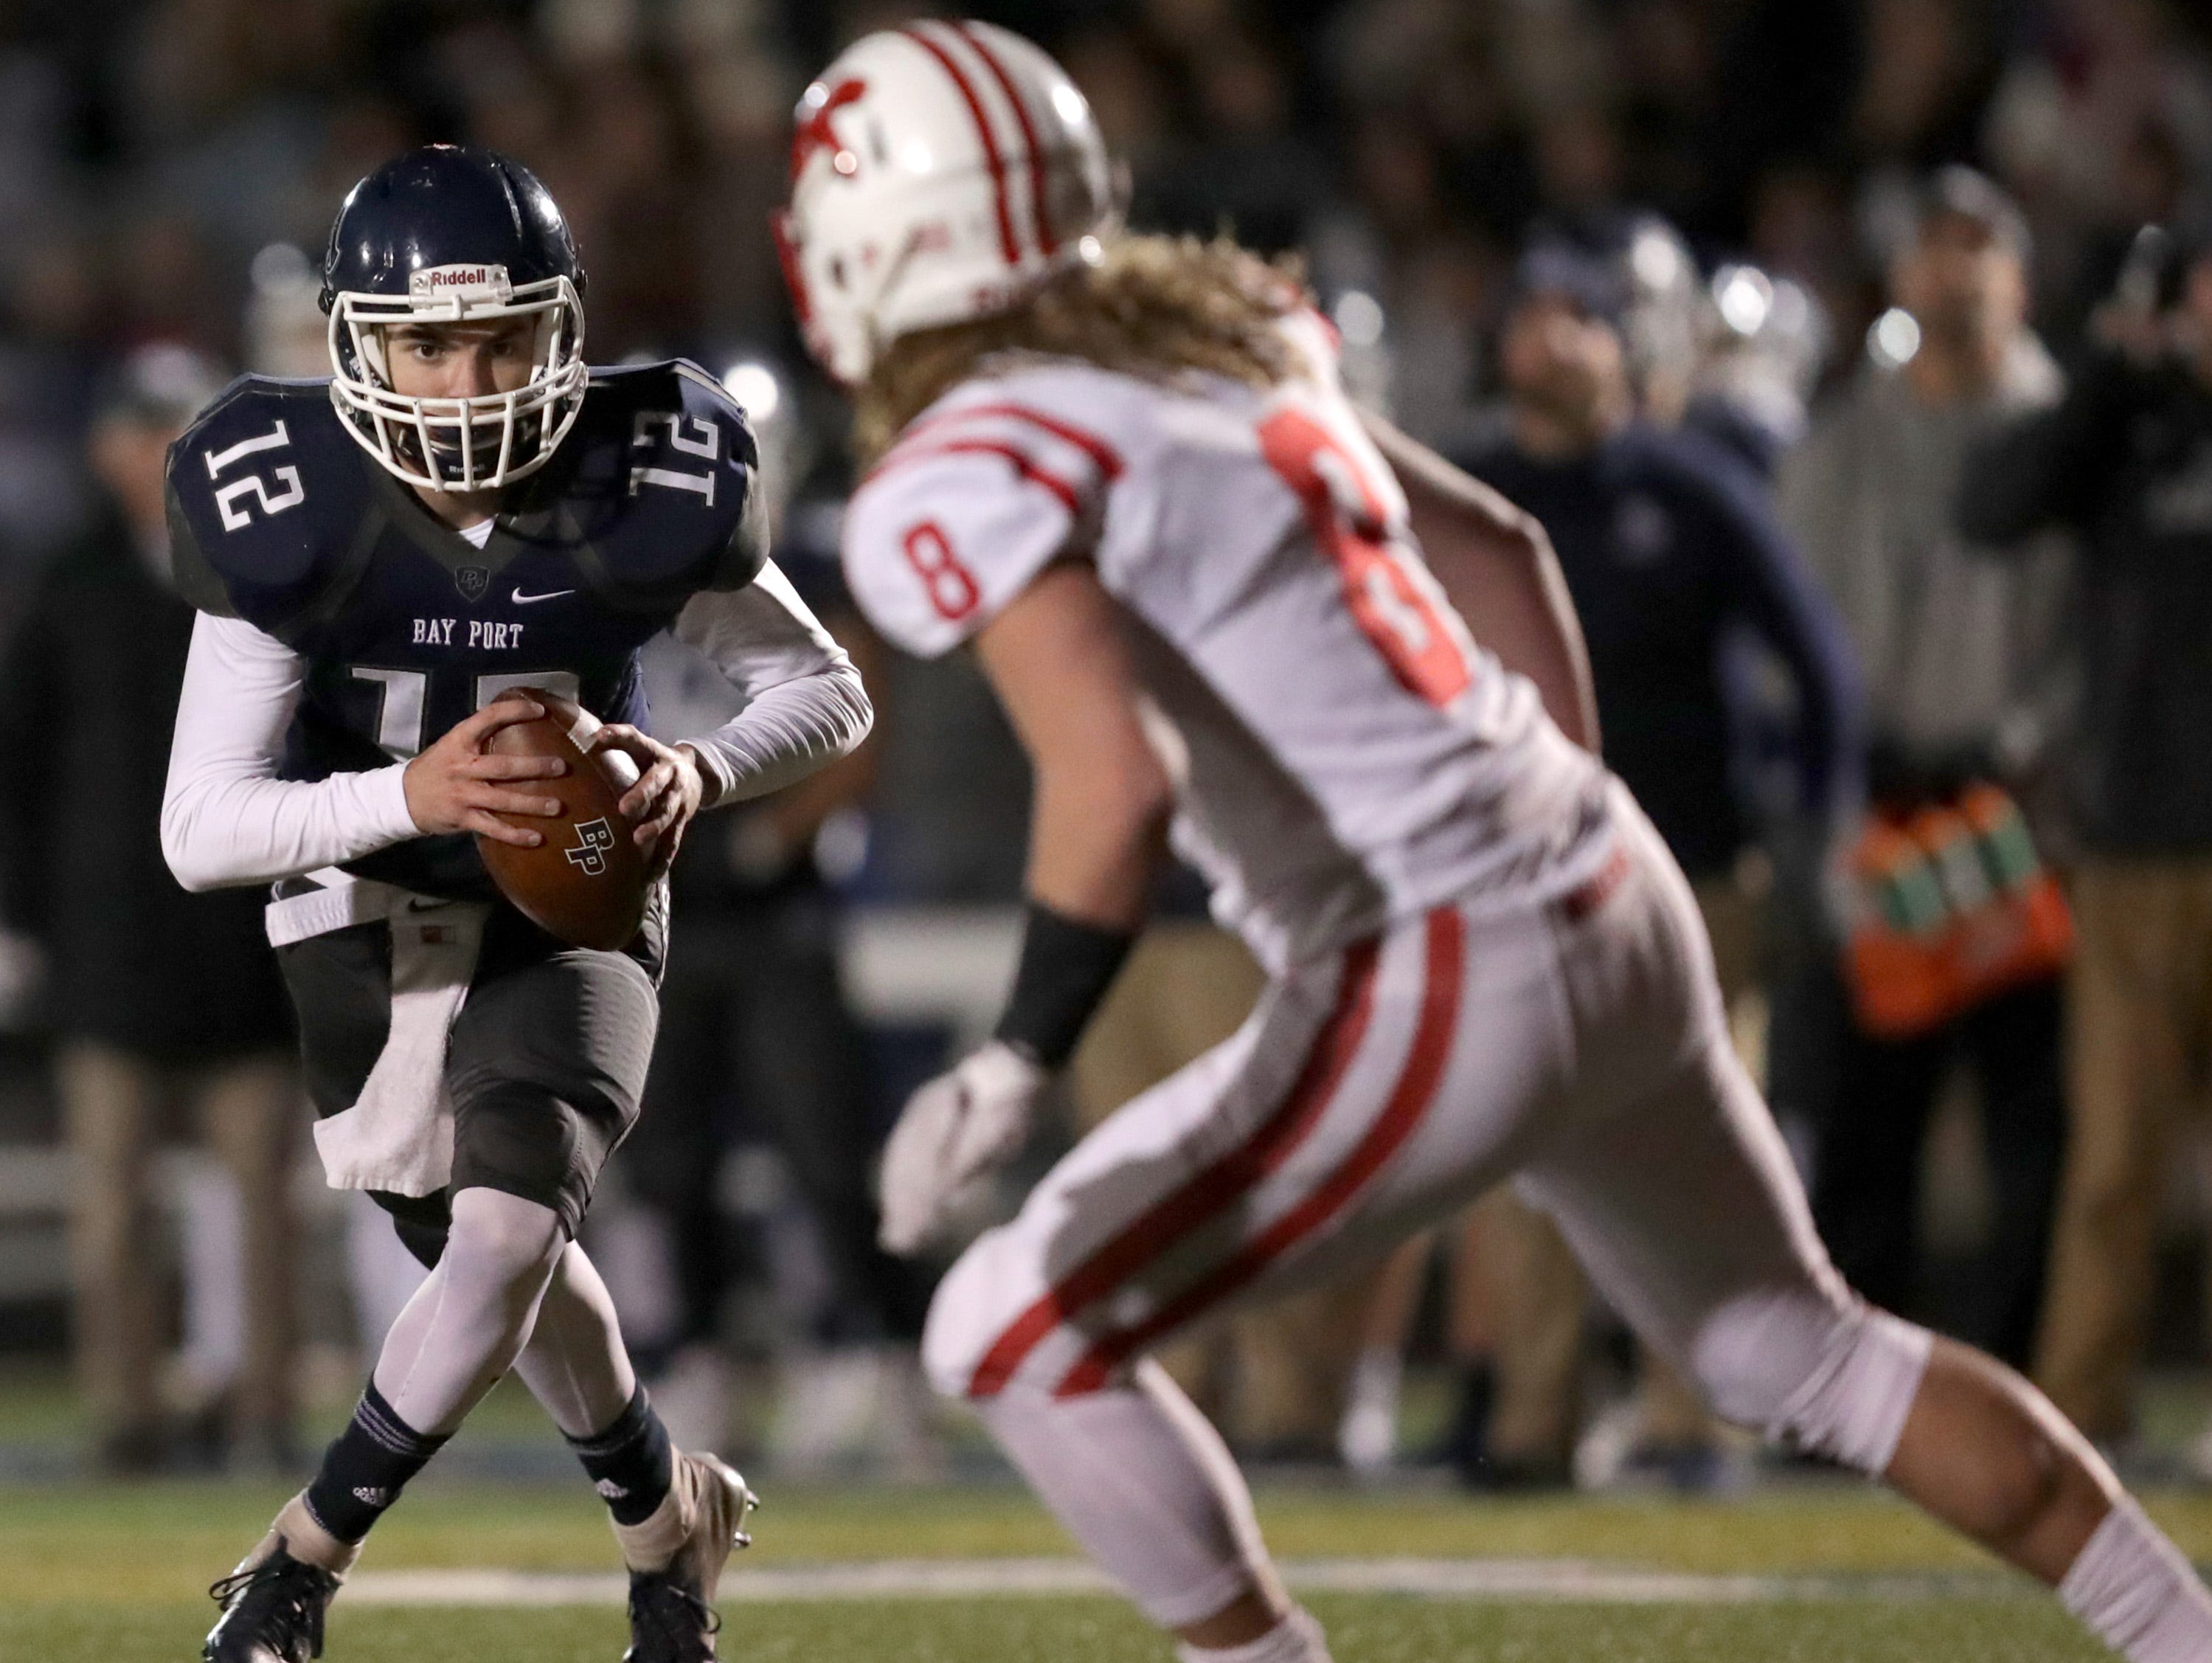 Bay Port High School's #12 Andrew Thomas against Kimberly High School during their WIAA Division 1 state quarterfinal football game on Friday, November 2, 2018, in Suamico, Wis.  Kimberly defeated Bay Port 38 to 20. Wm. Glasheen/USA TODAY NETWORK-Wisconsin.